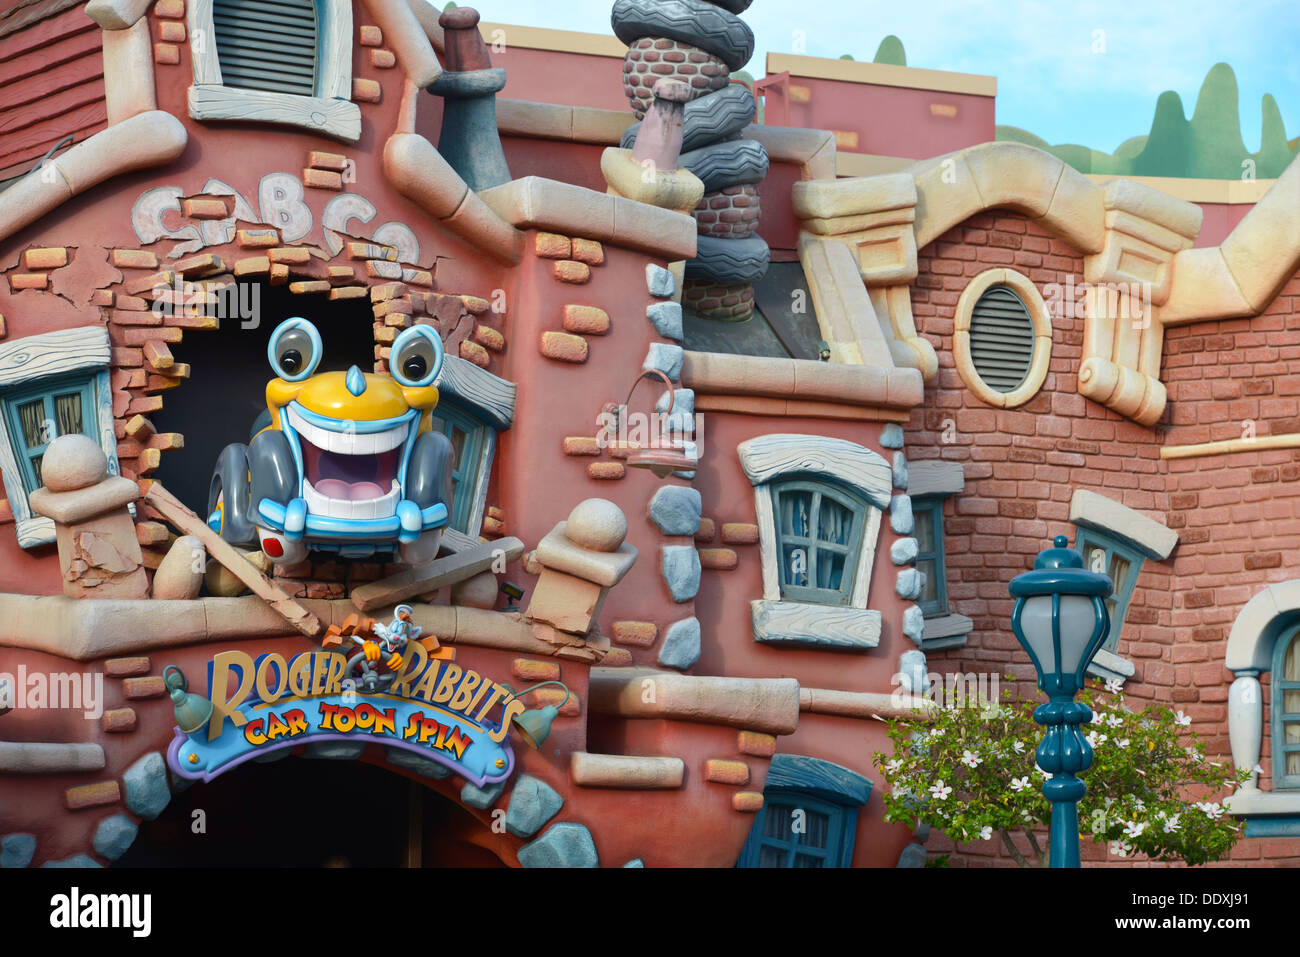 Roger Rabbit's Car Toon Spin, Disneyland, Toontown, Anaheim California - Stock Image